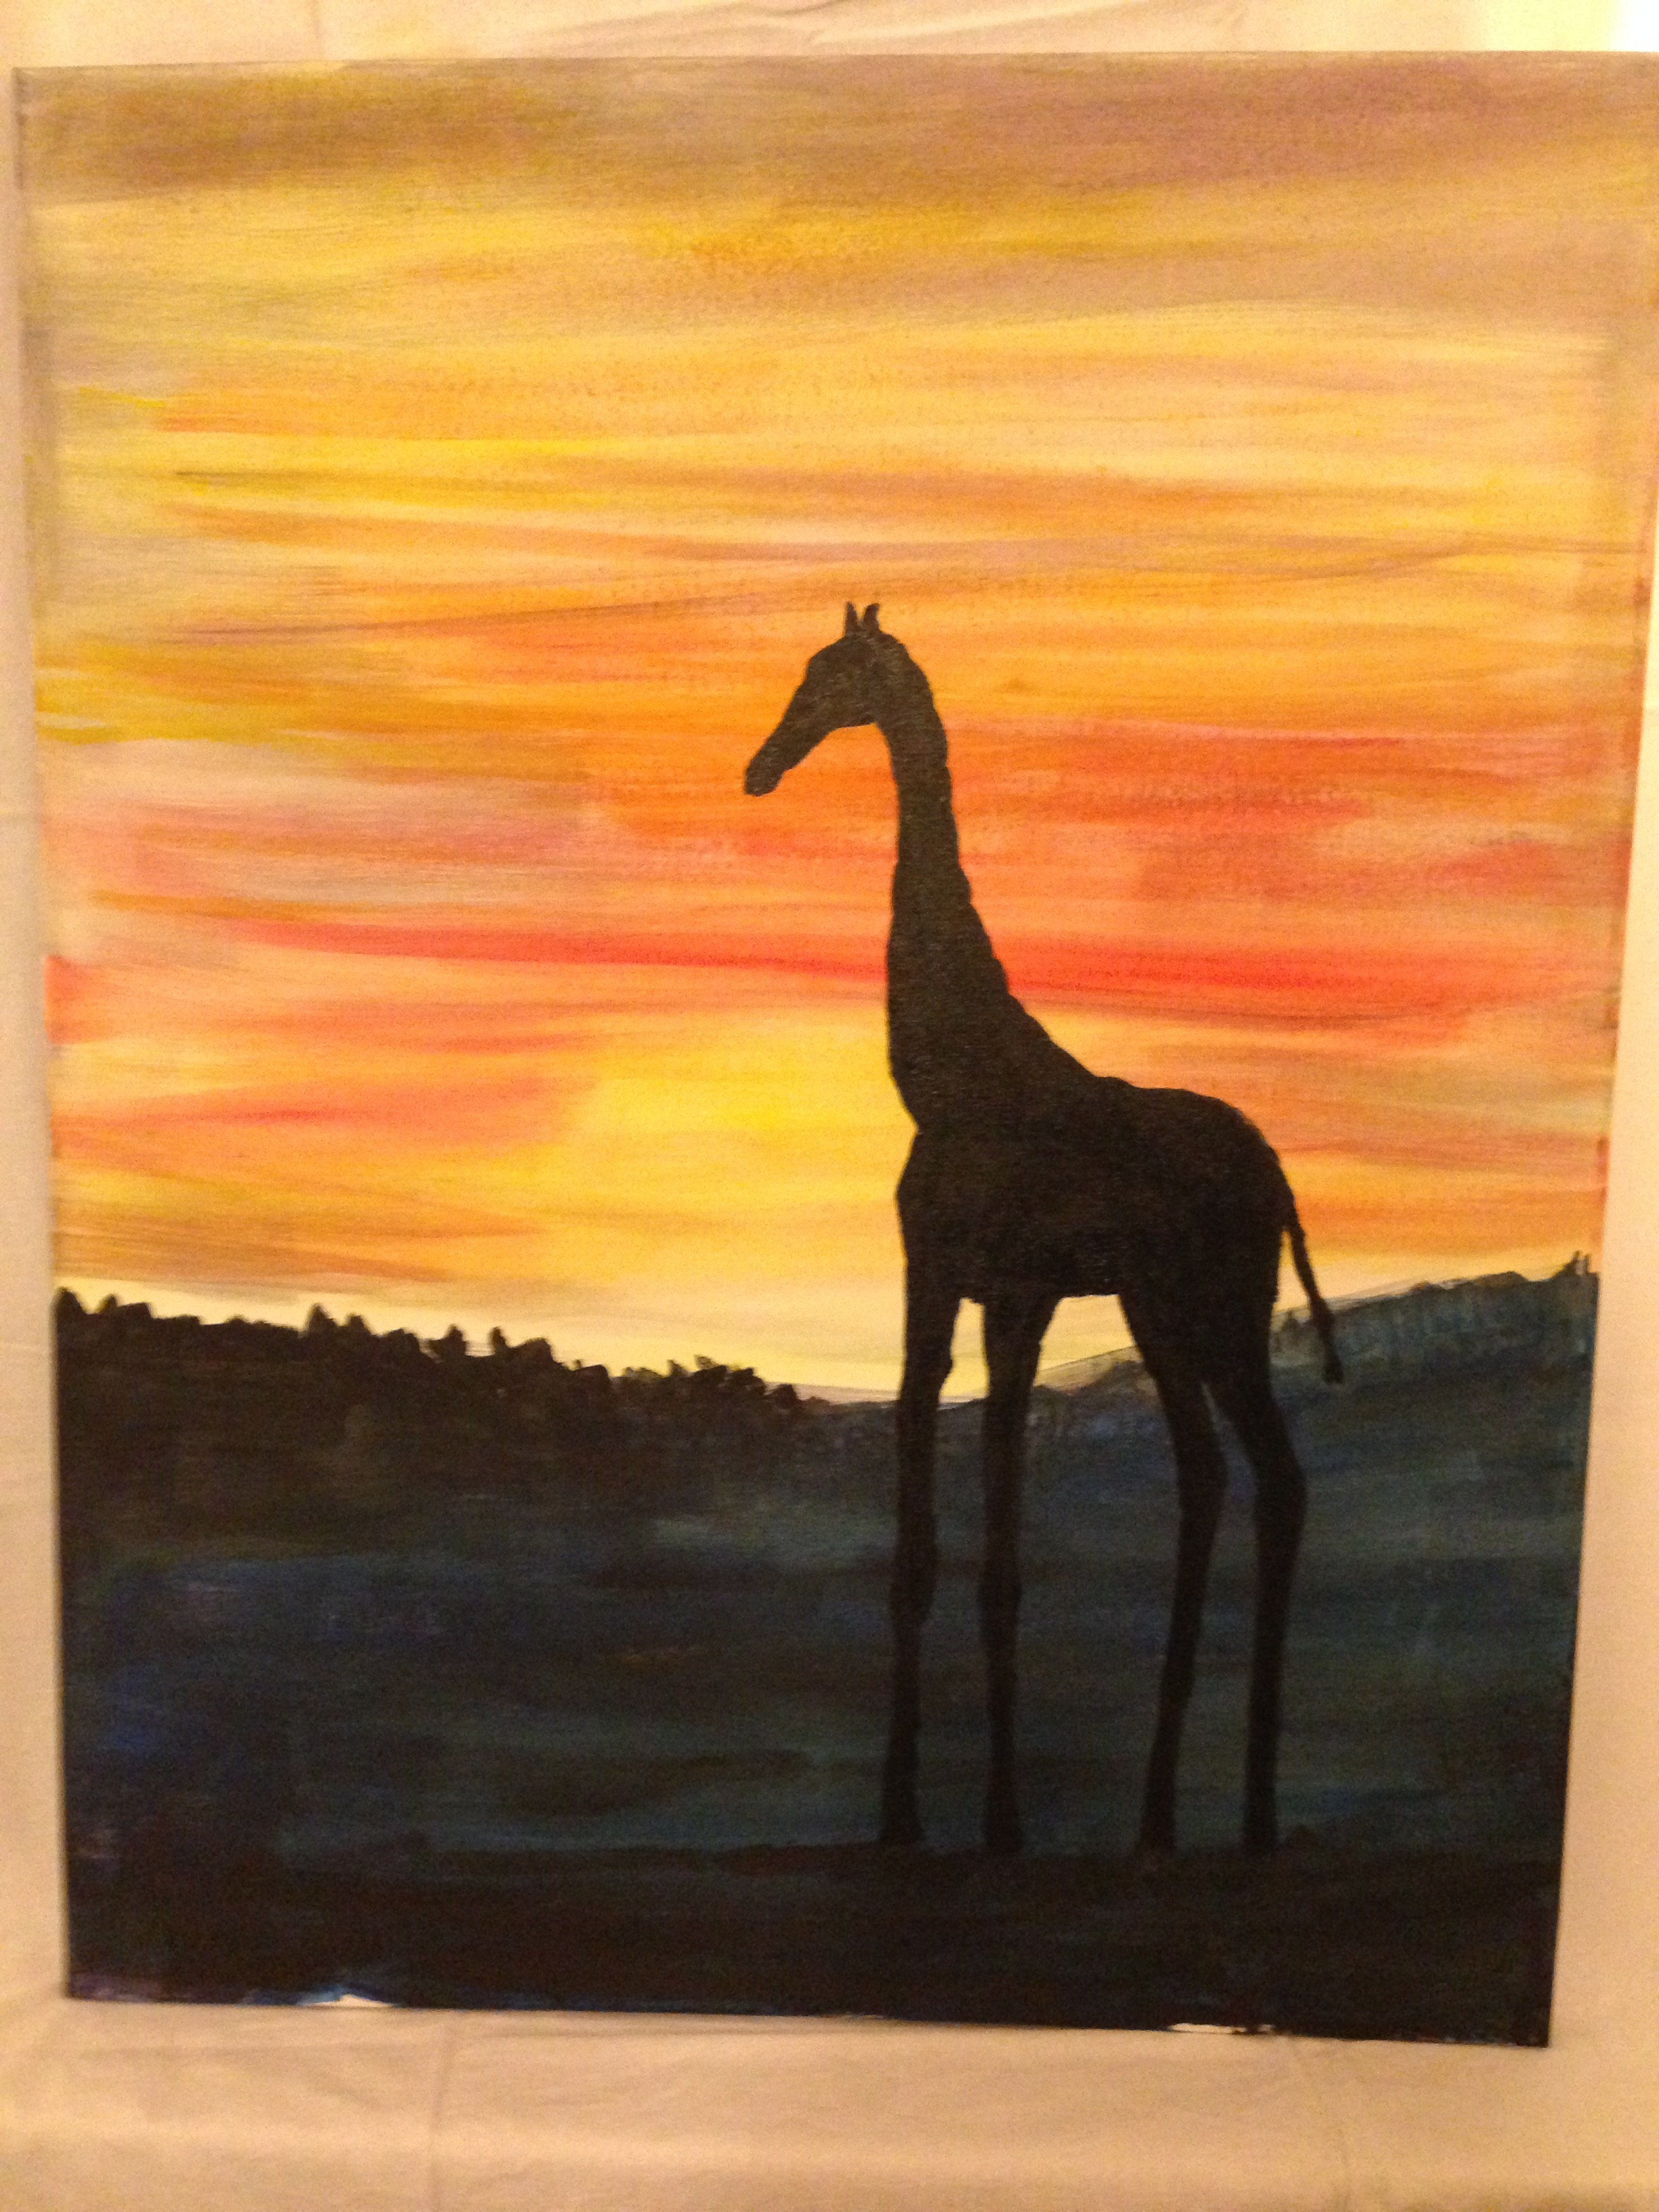 31649 || 5094 || Giraffe out of Africa ||  || 7655